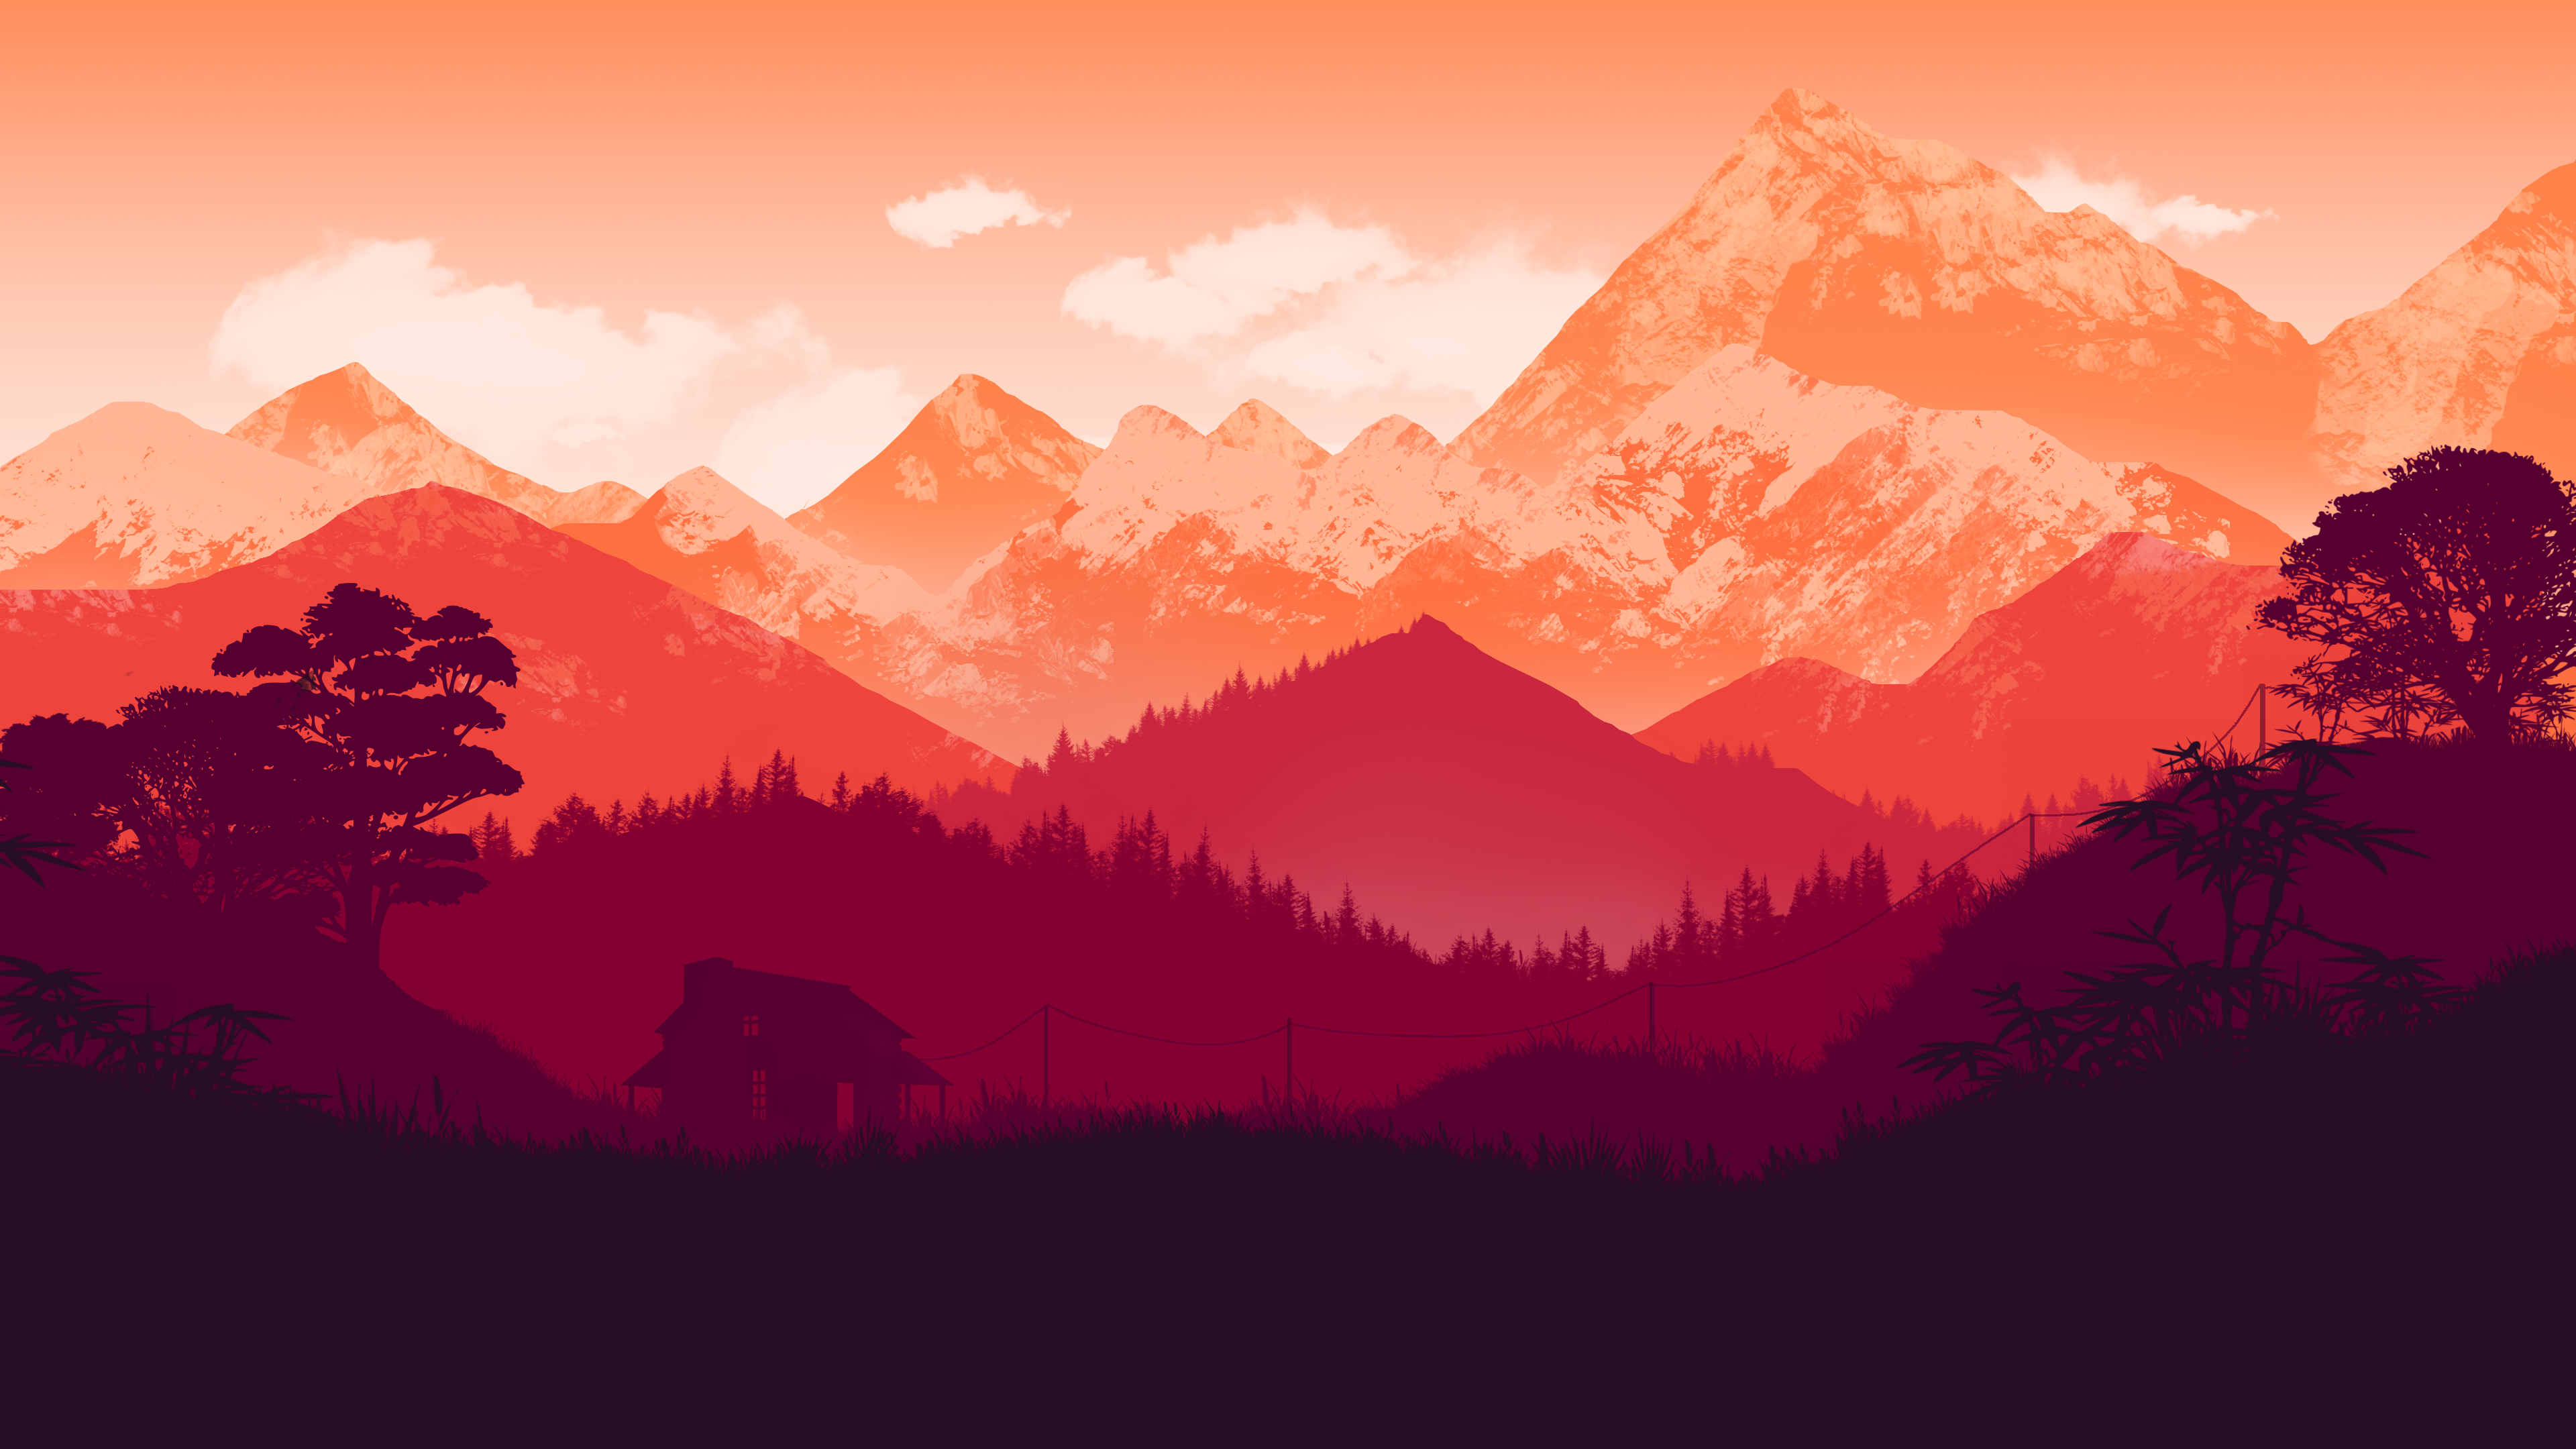 General 3840x2160 dusk mountains forest digital artwork clouds house power lines red